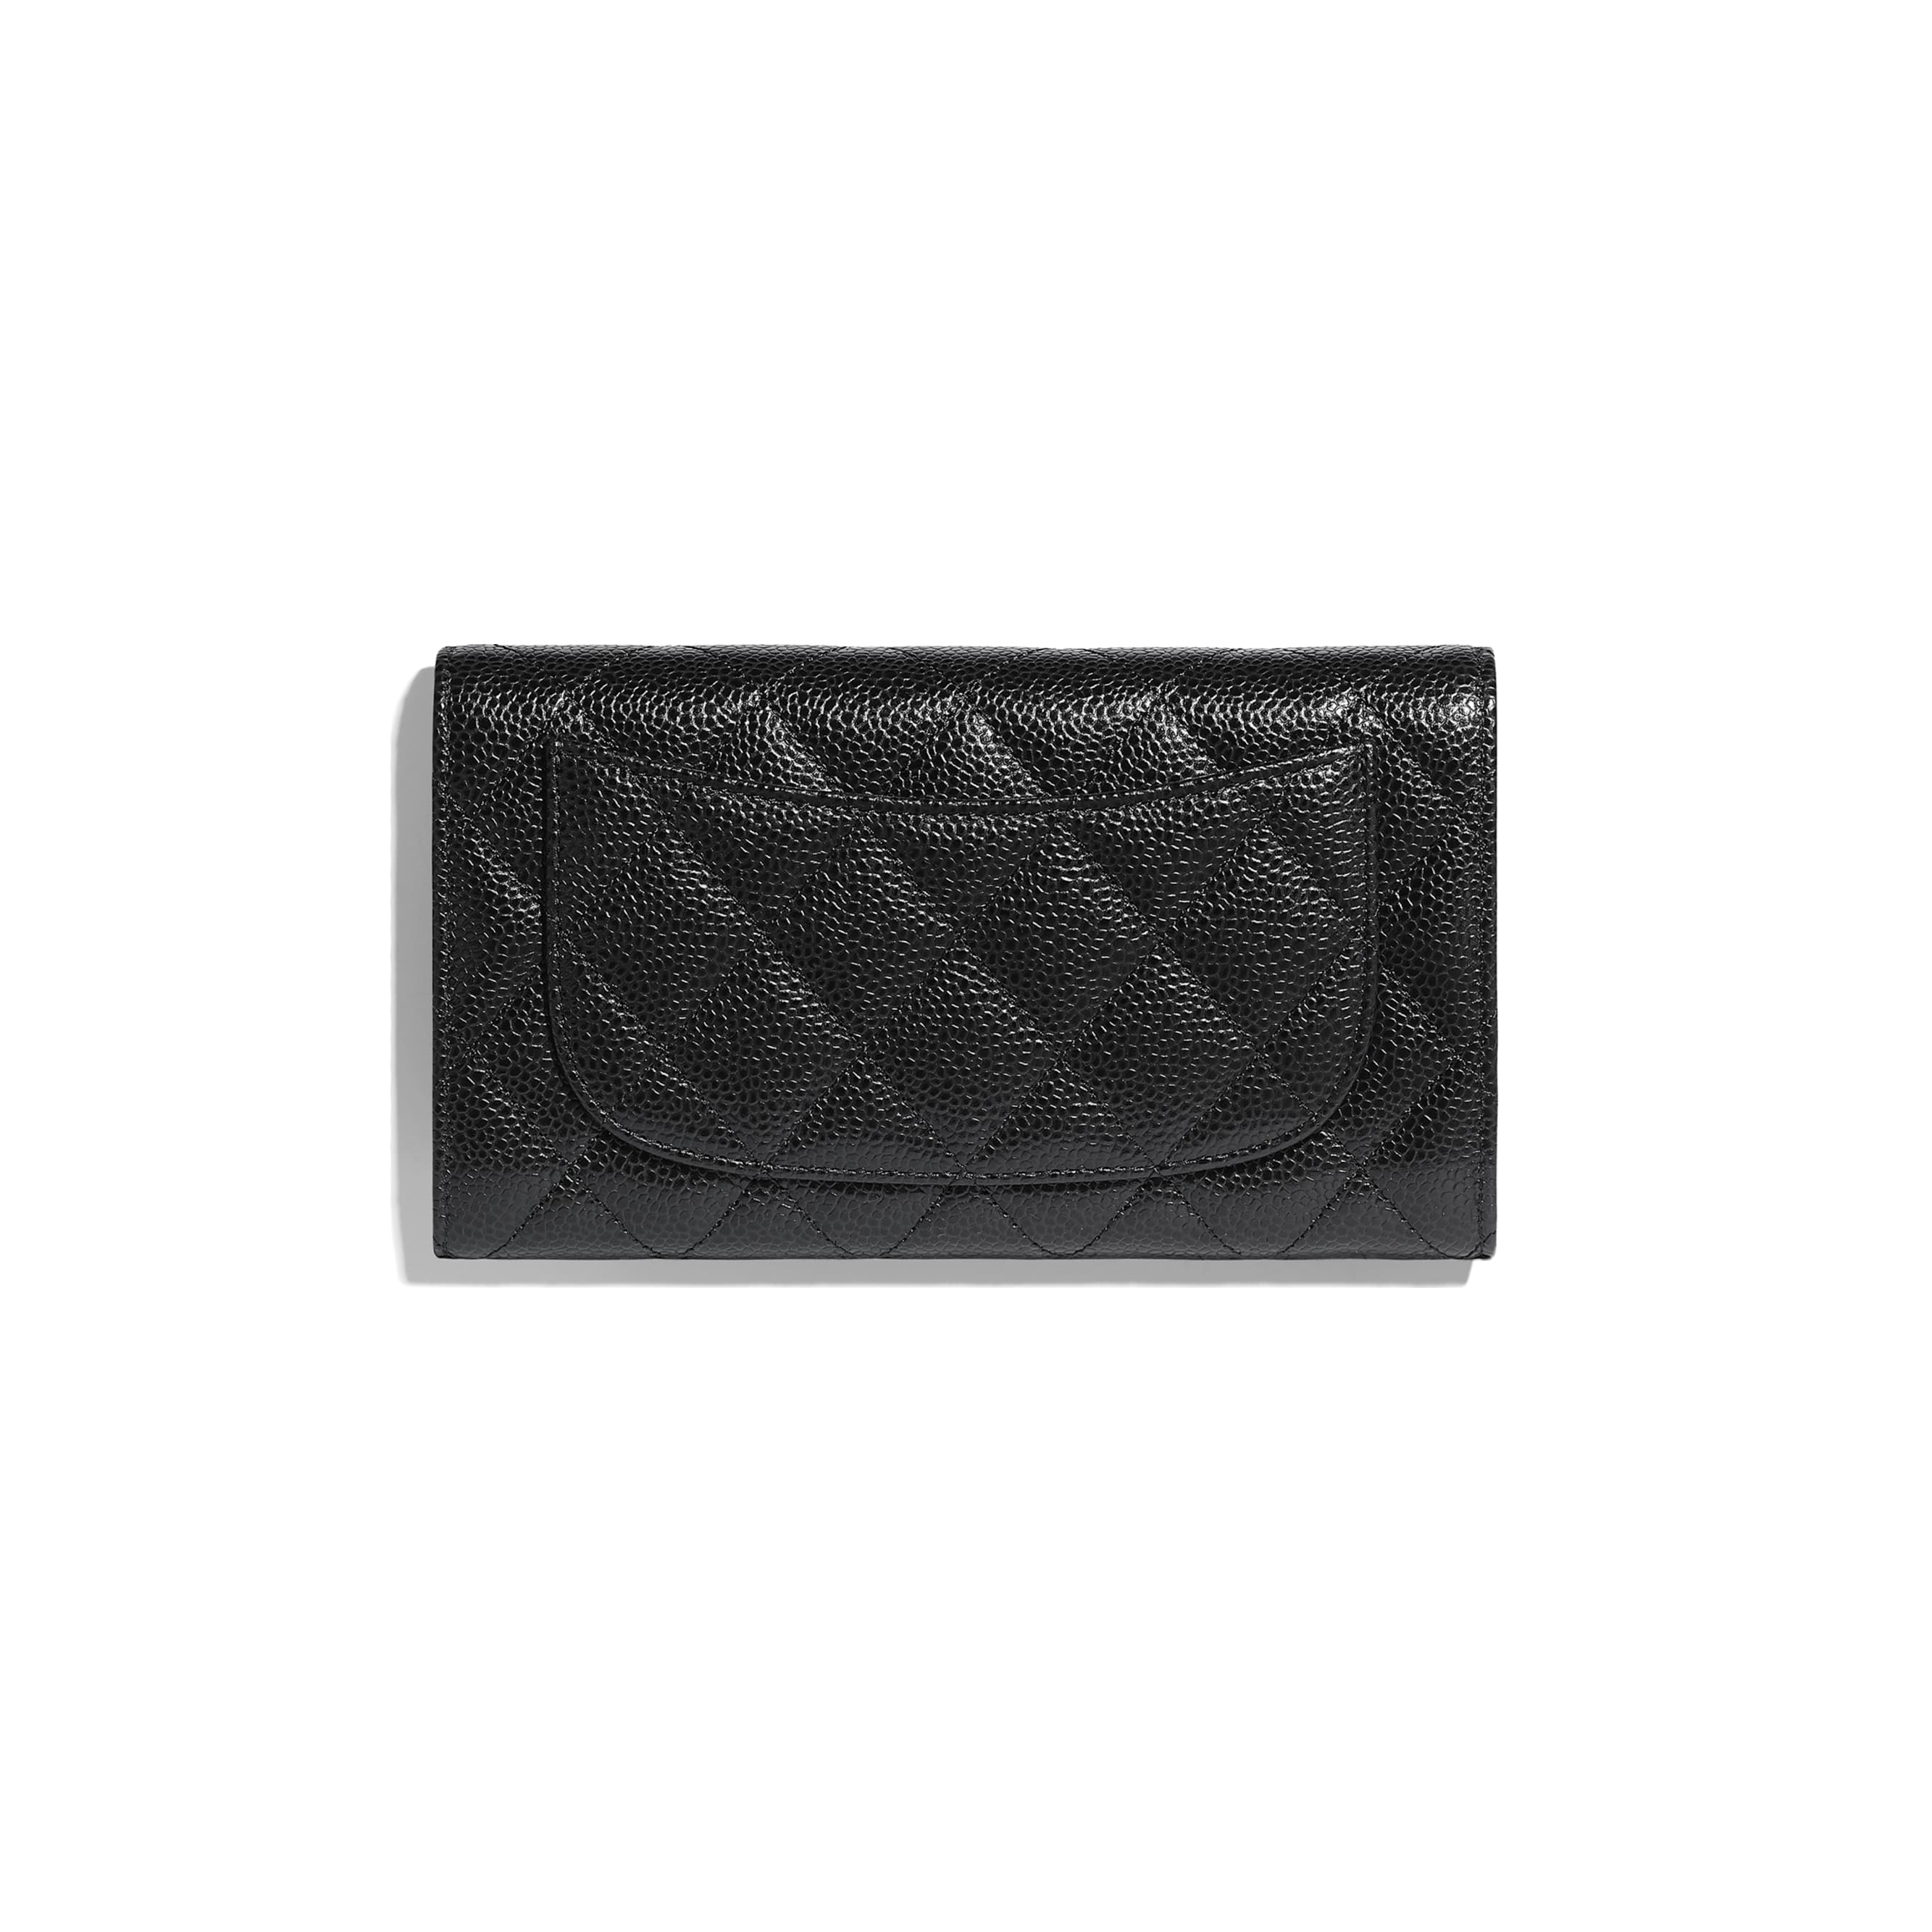 Classic Flap Wallet - Black - Grained Calfskin & Gold-Tone Metal - CHANEL - Alternative view - see standard sized version